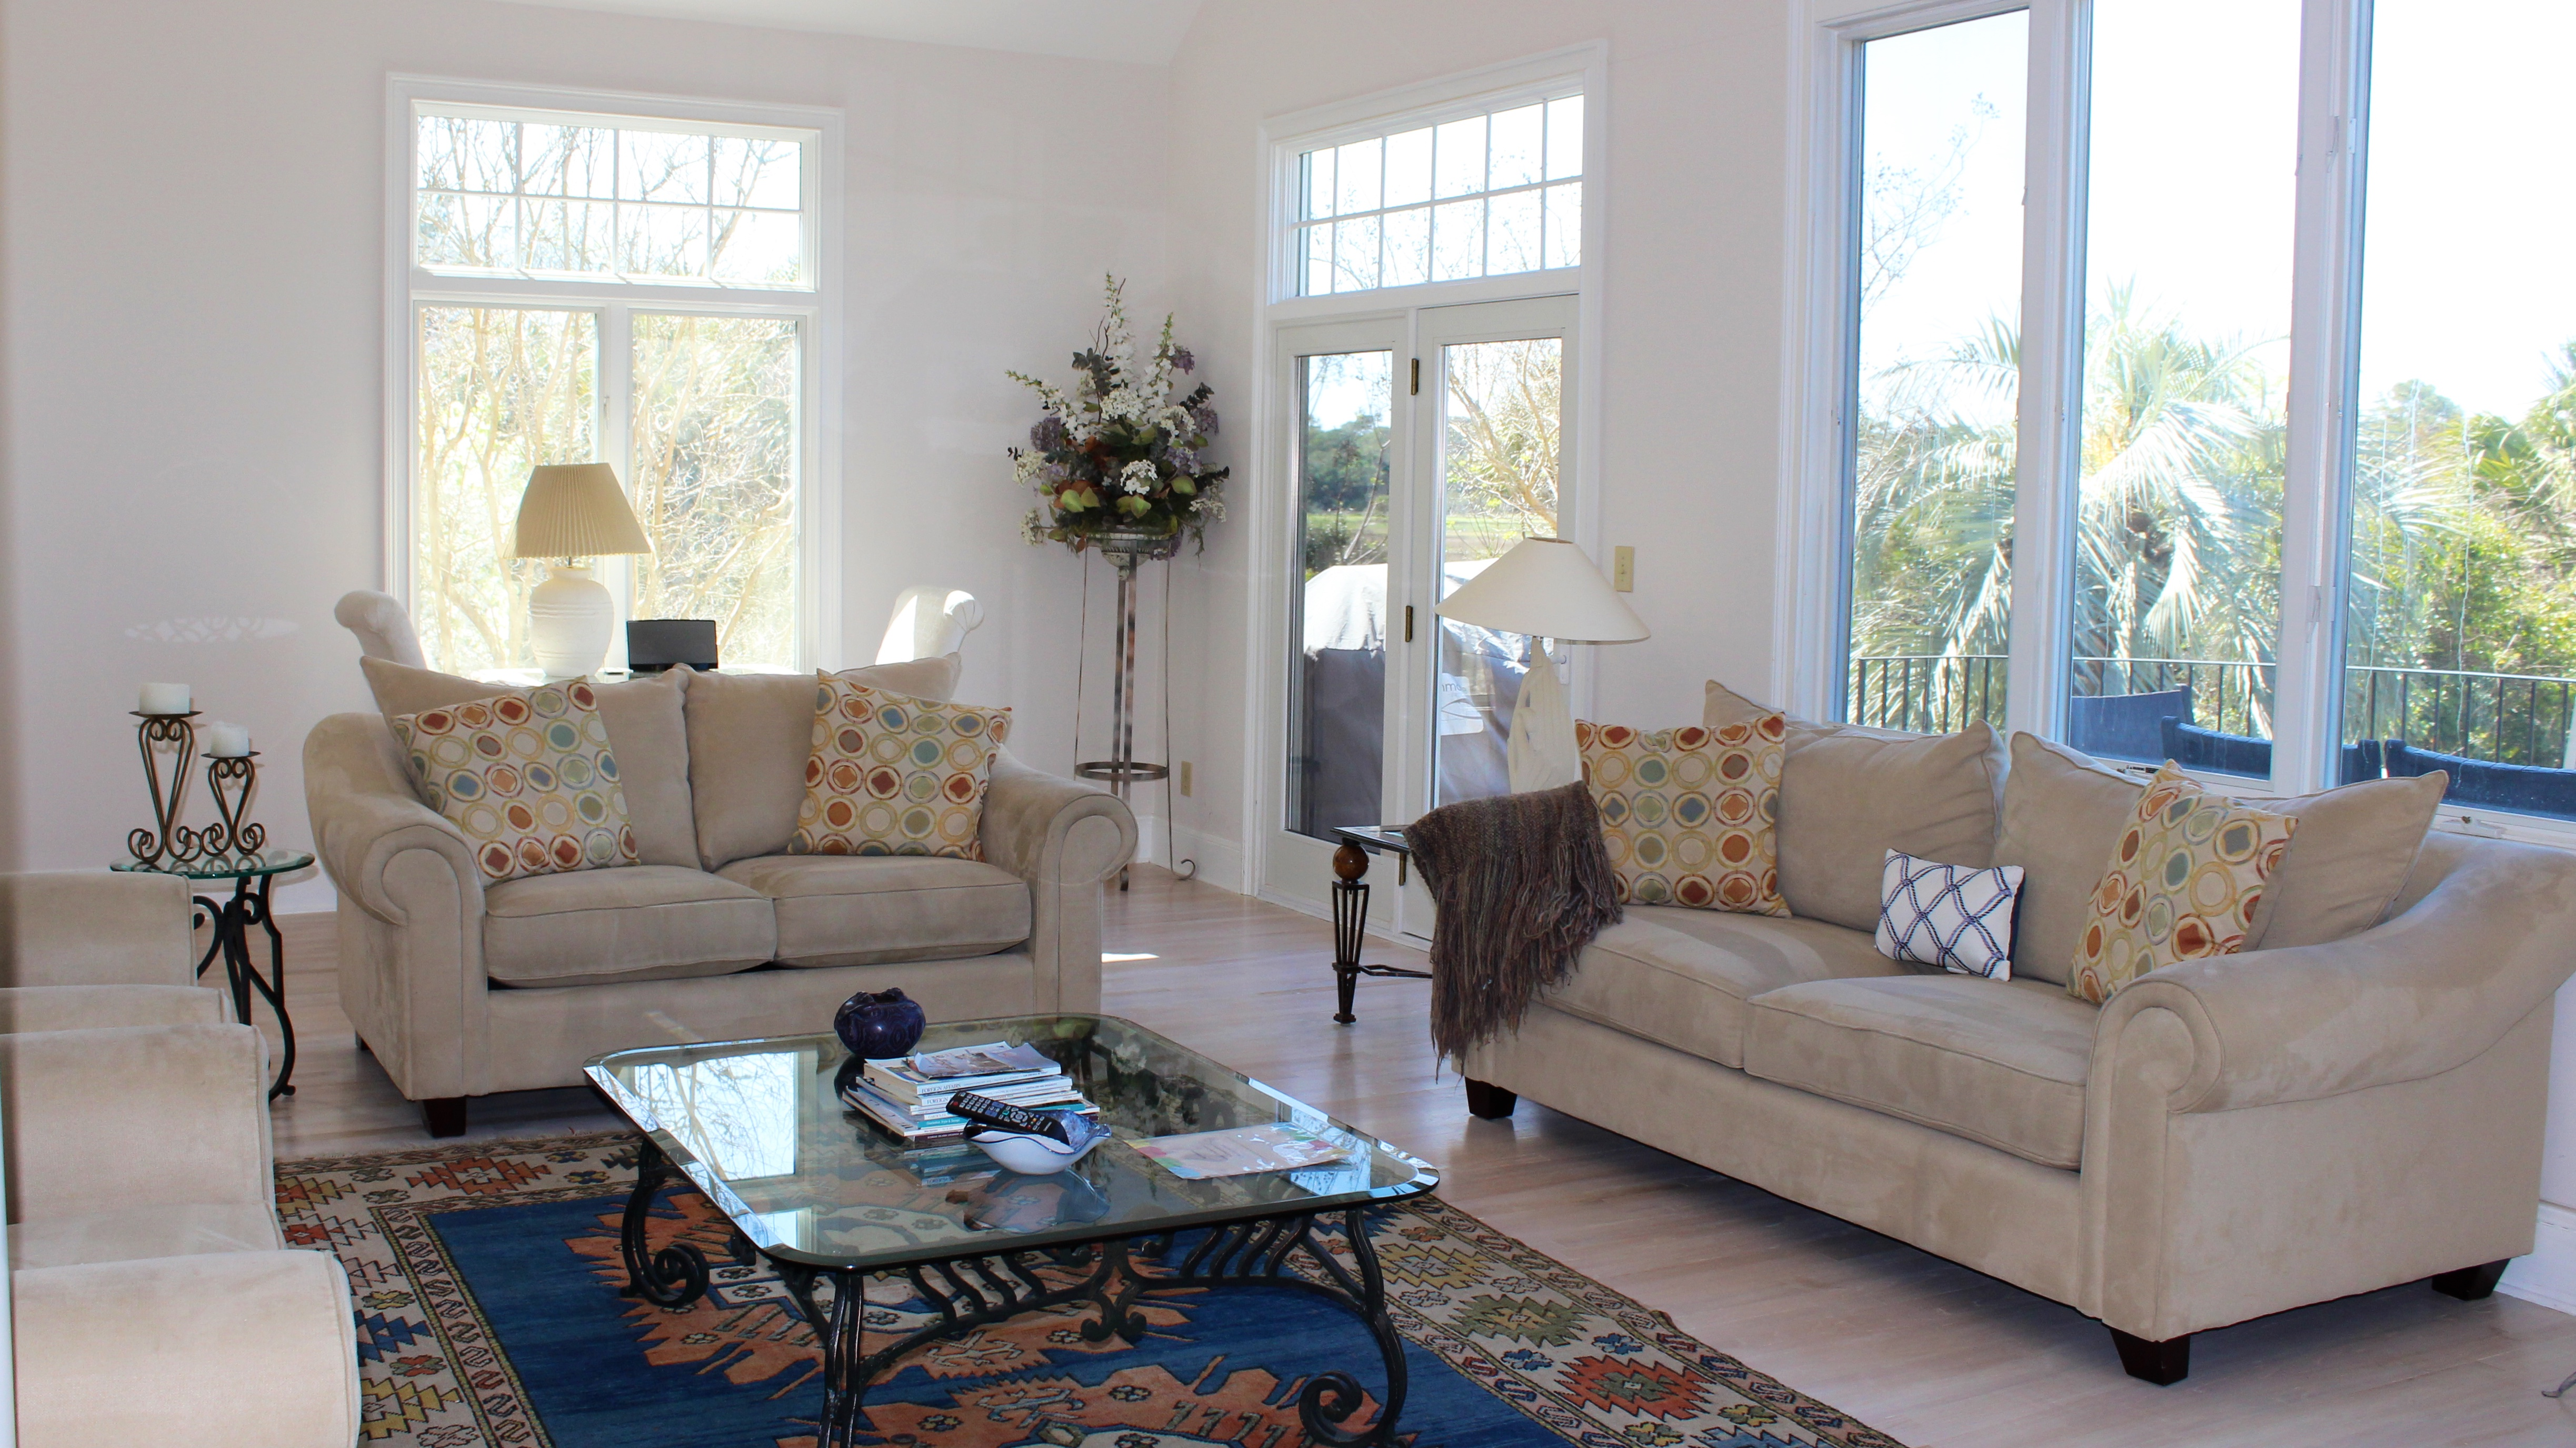 You will love watching the amazing wildlife and sunsets from this great room.